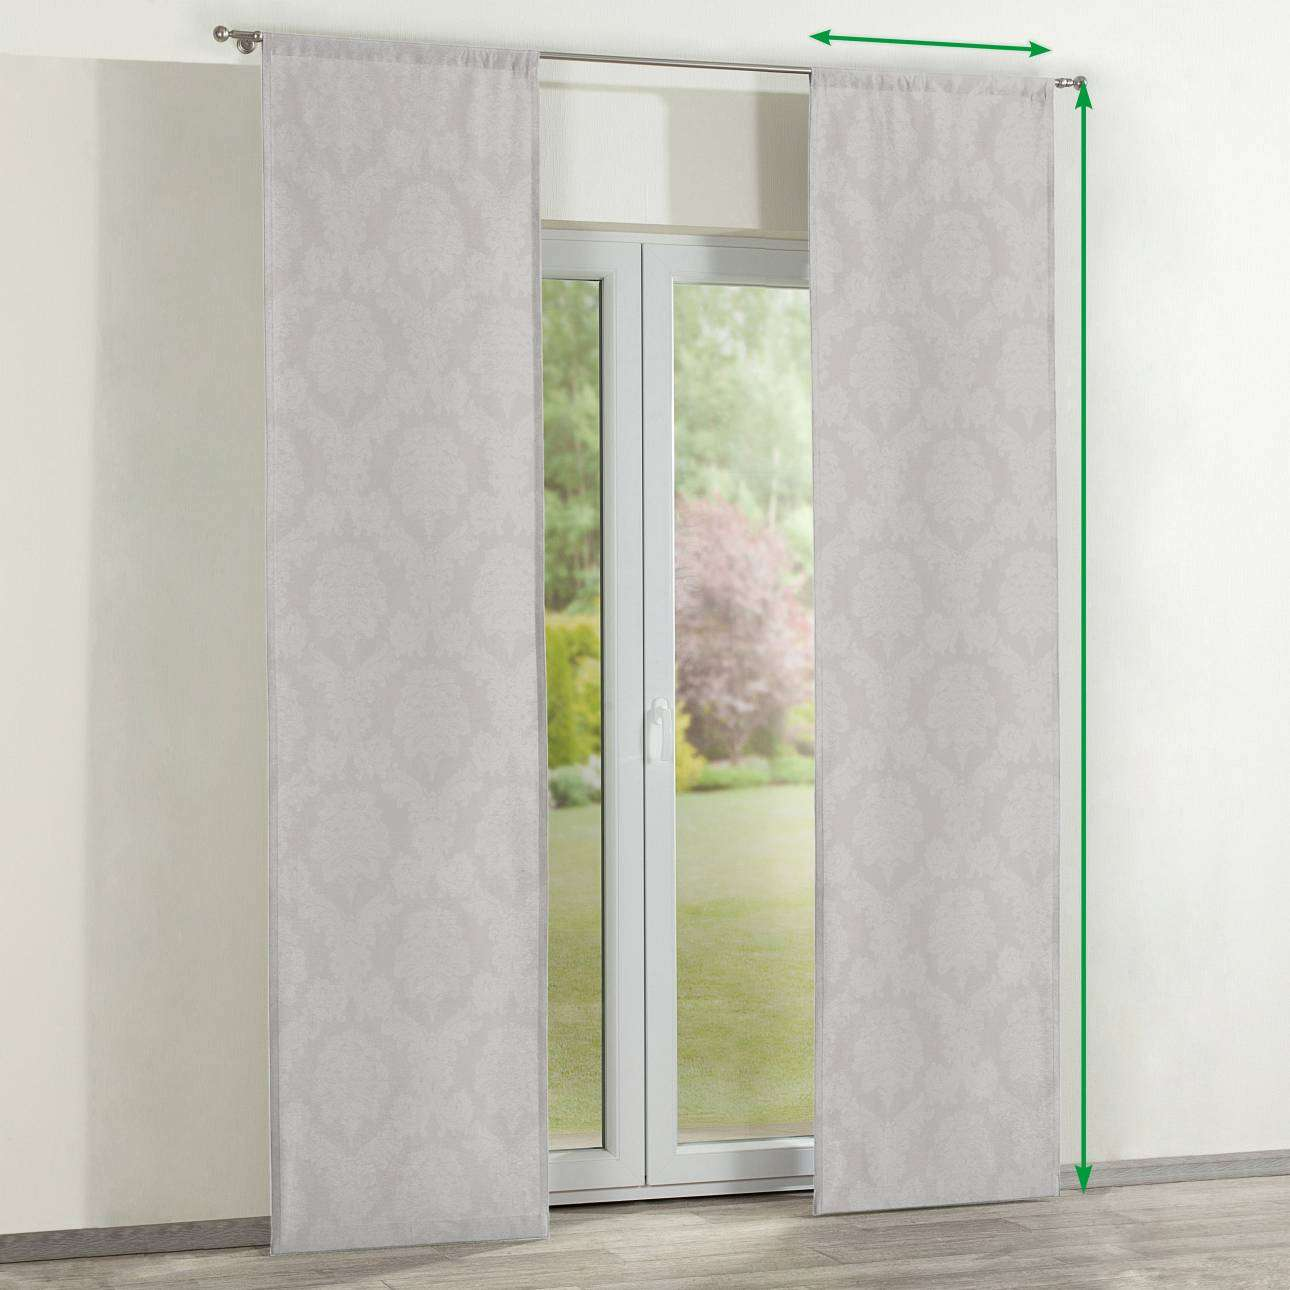 Slot panel curtains – Set of 2 in collection Damasco, fabric: 613-81